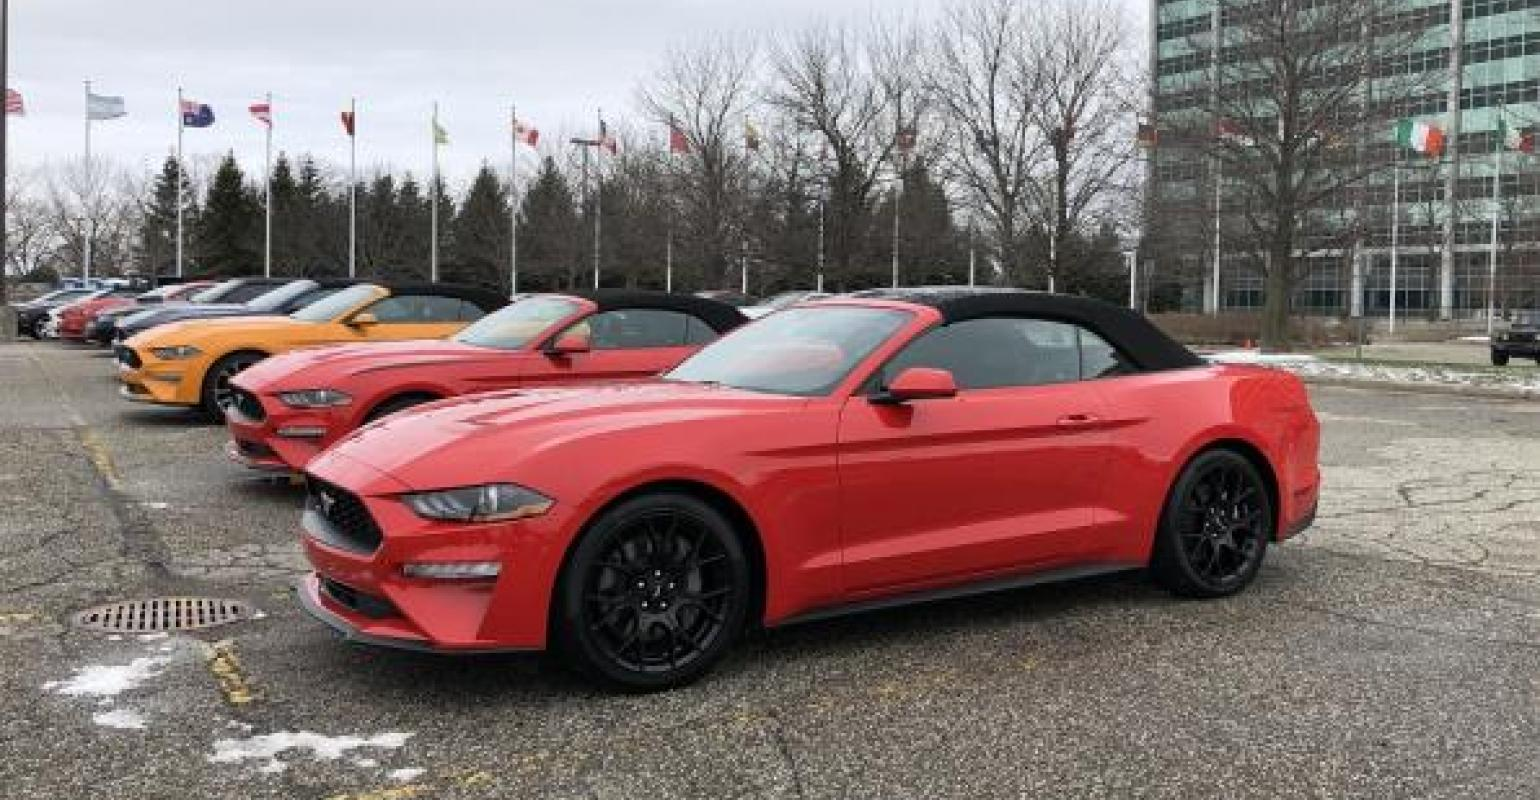 4c18be7c2 Tops up on Mustang convertibles at chilly 54th anniversary of iconic pony  car at Ford World